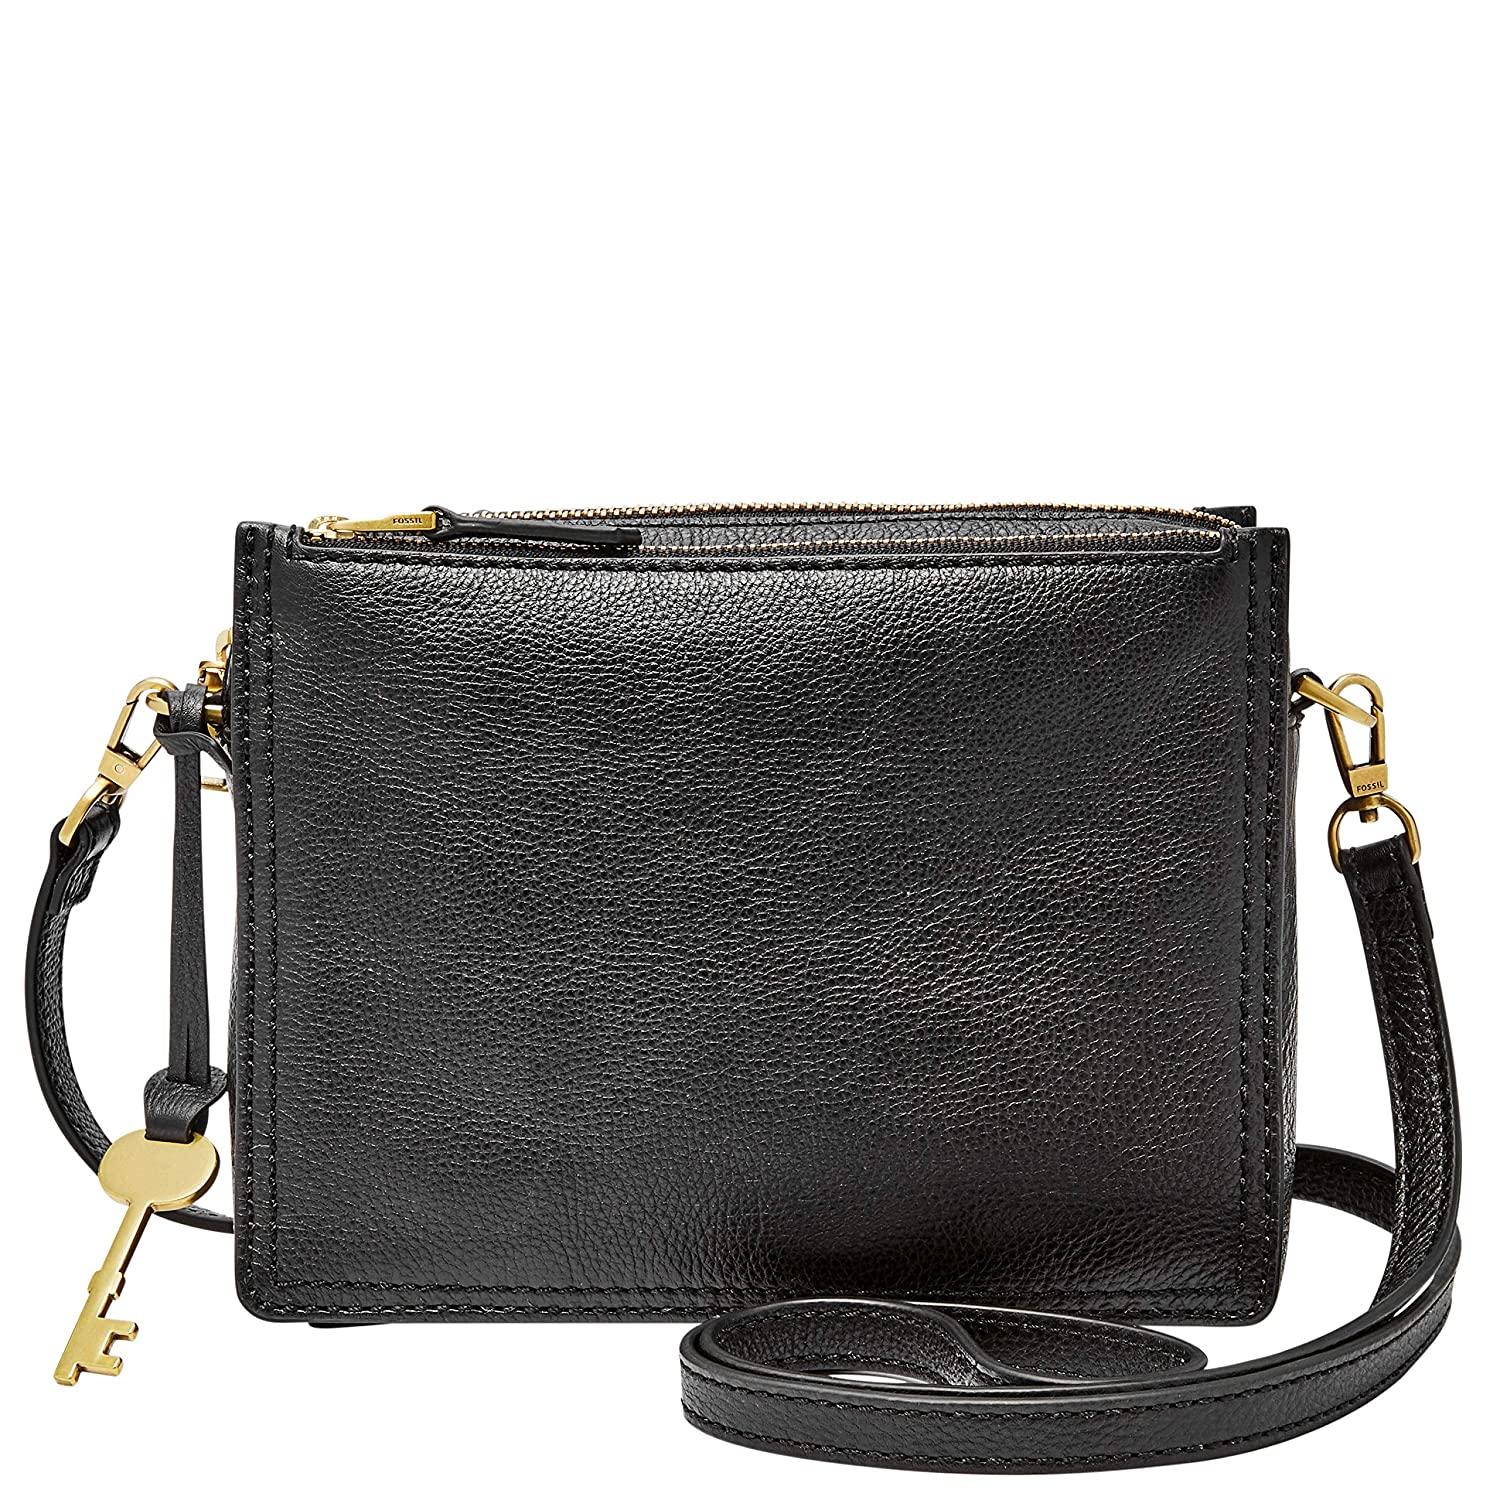 Amazon.com: Fossil Campbell Crossbody Bag, talla única ...